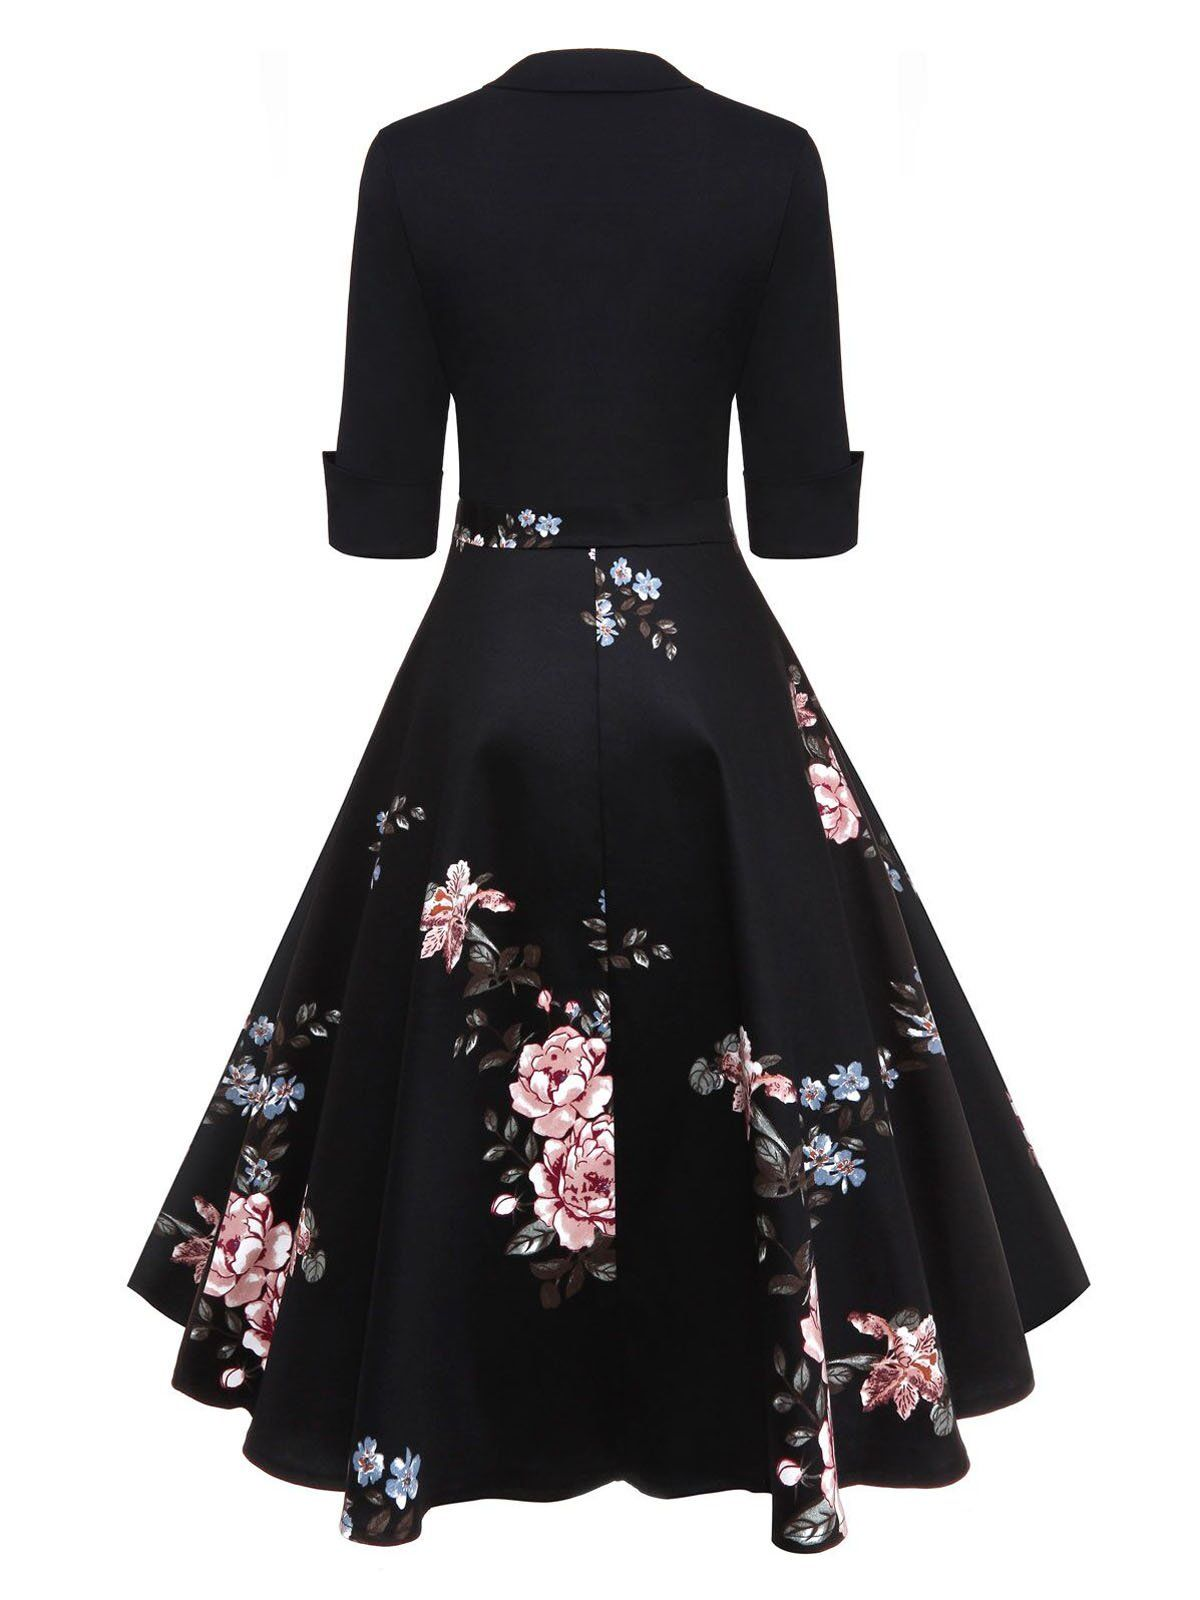 4cd80198d051 1950s Floral Print Patchwork Swing Dress – Retro Stage - Chic Vintage  Dresses and Accessories